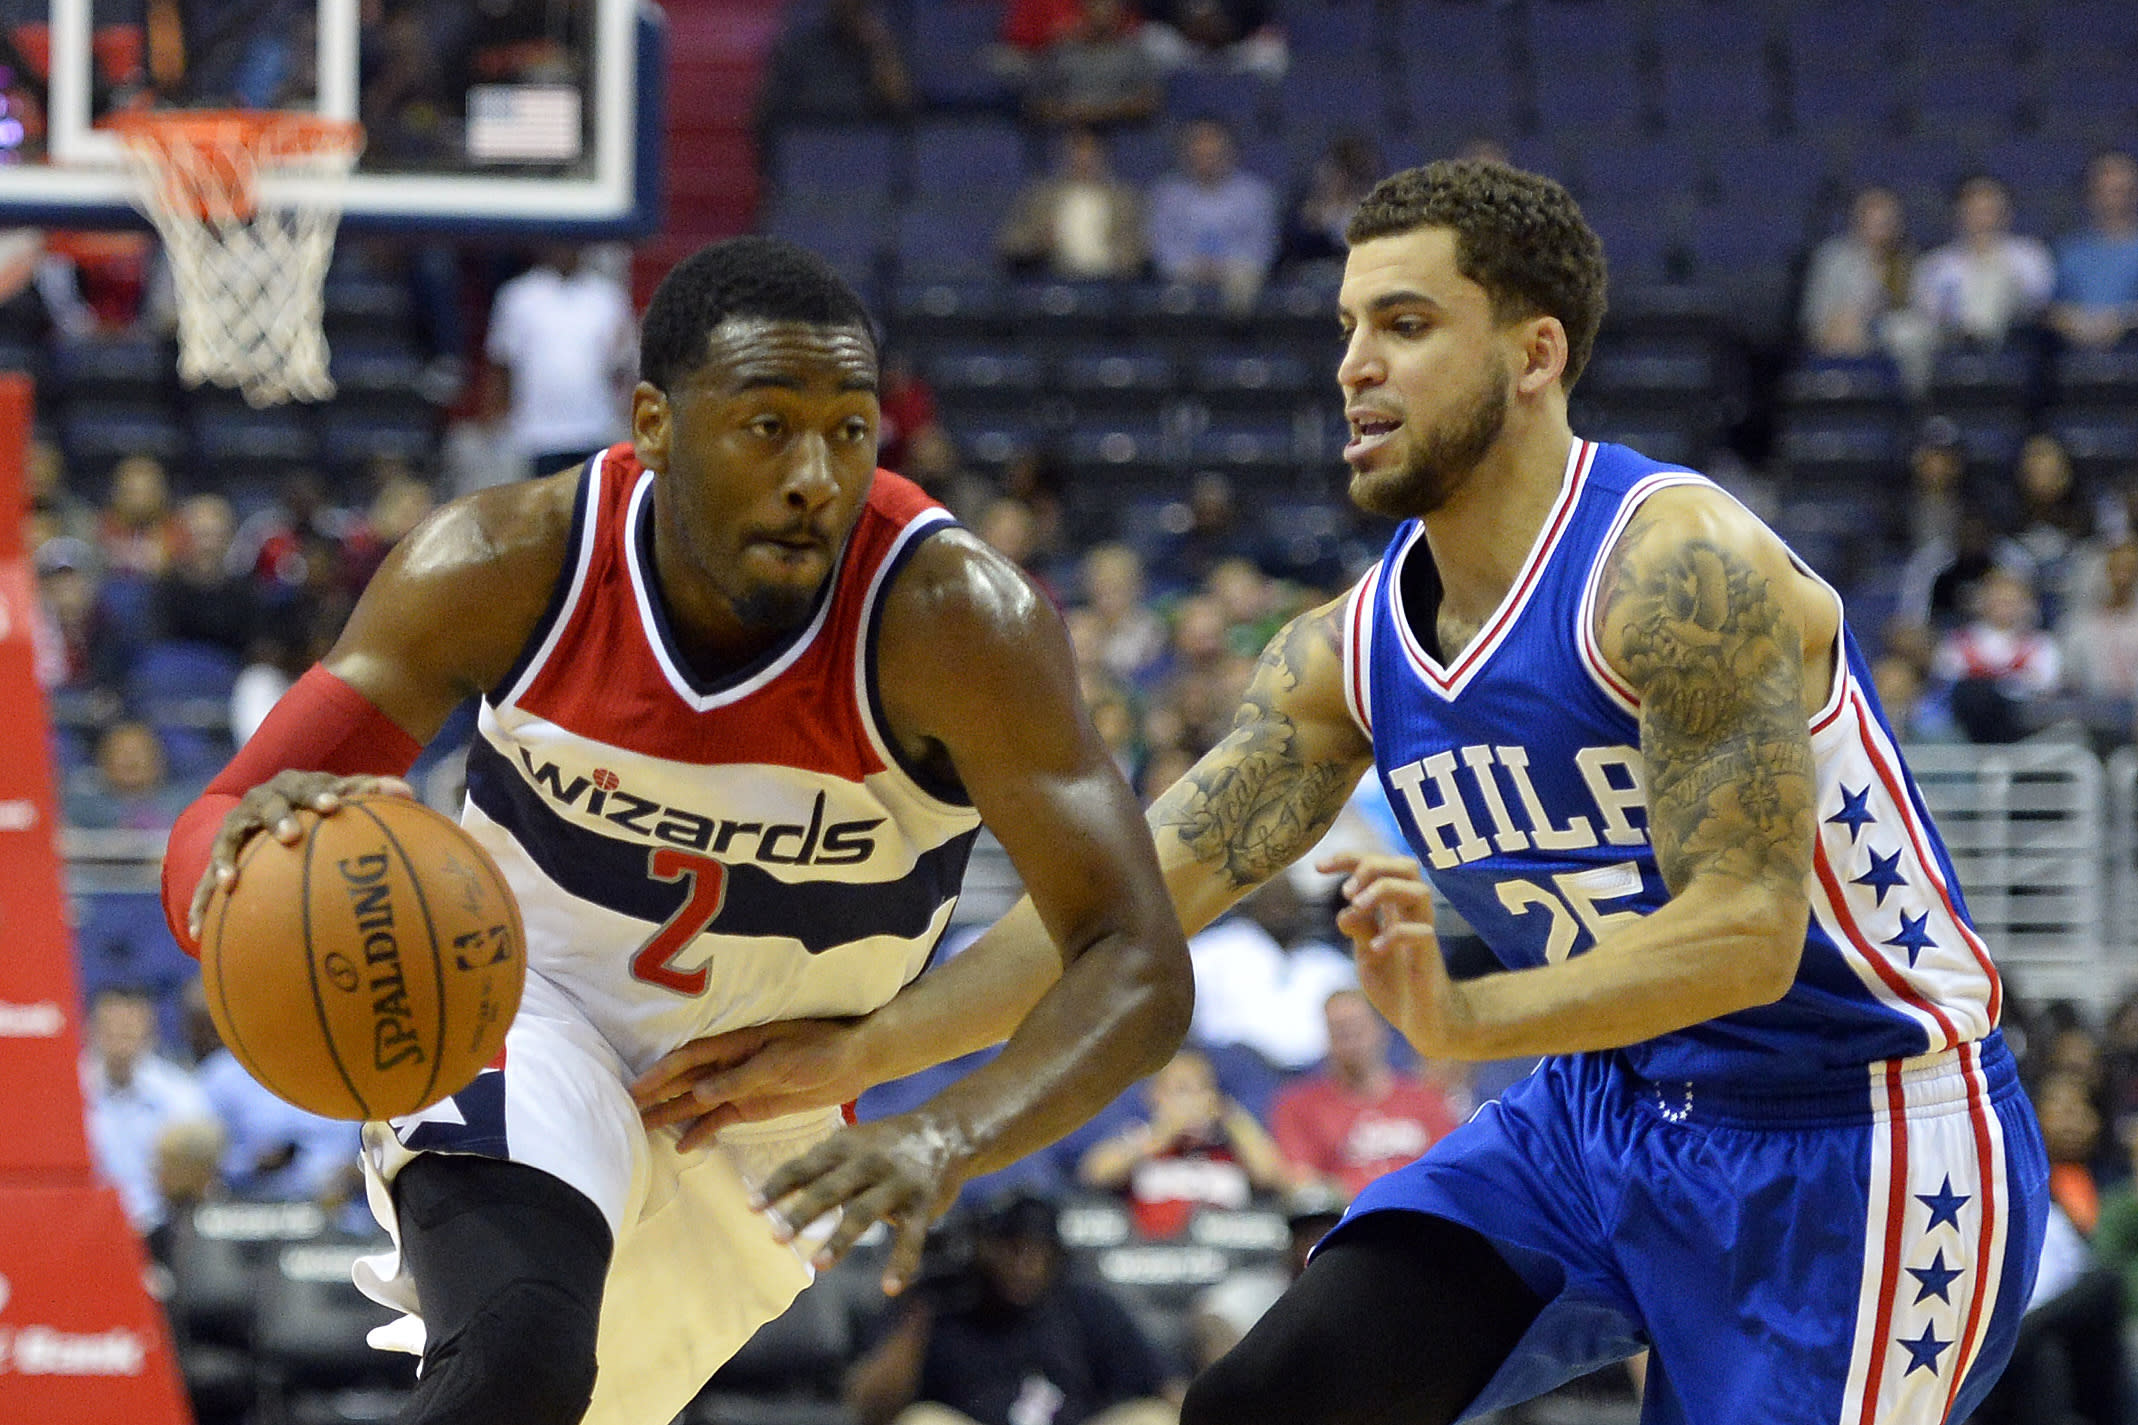 Morning tip: To get up to speed, Wizards must clear this hurdle